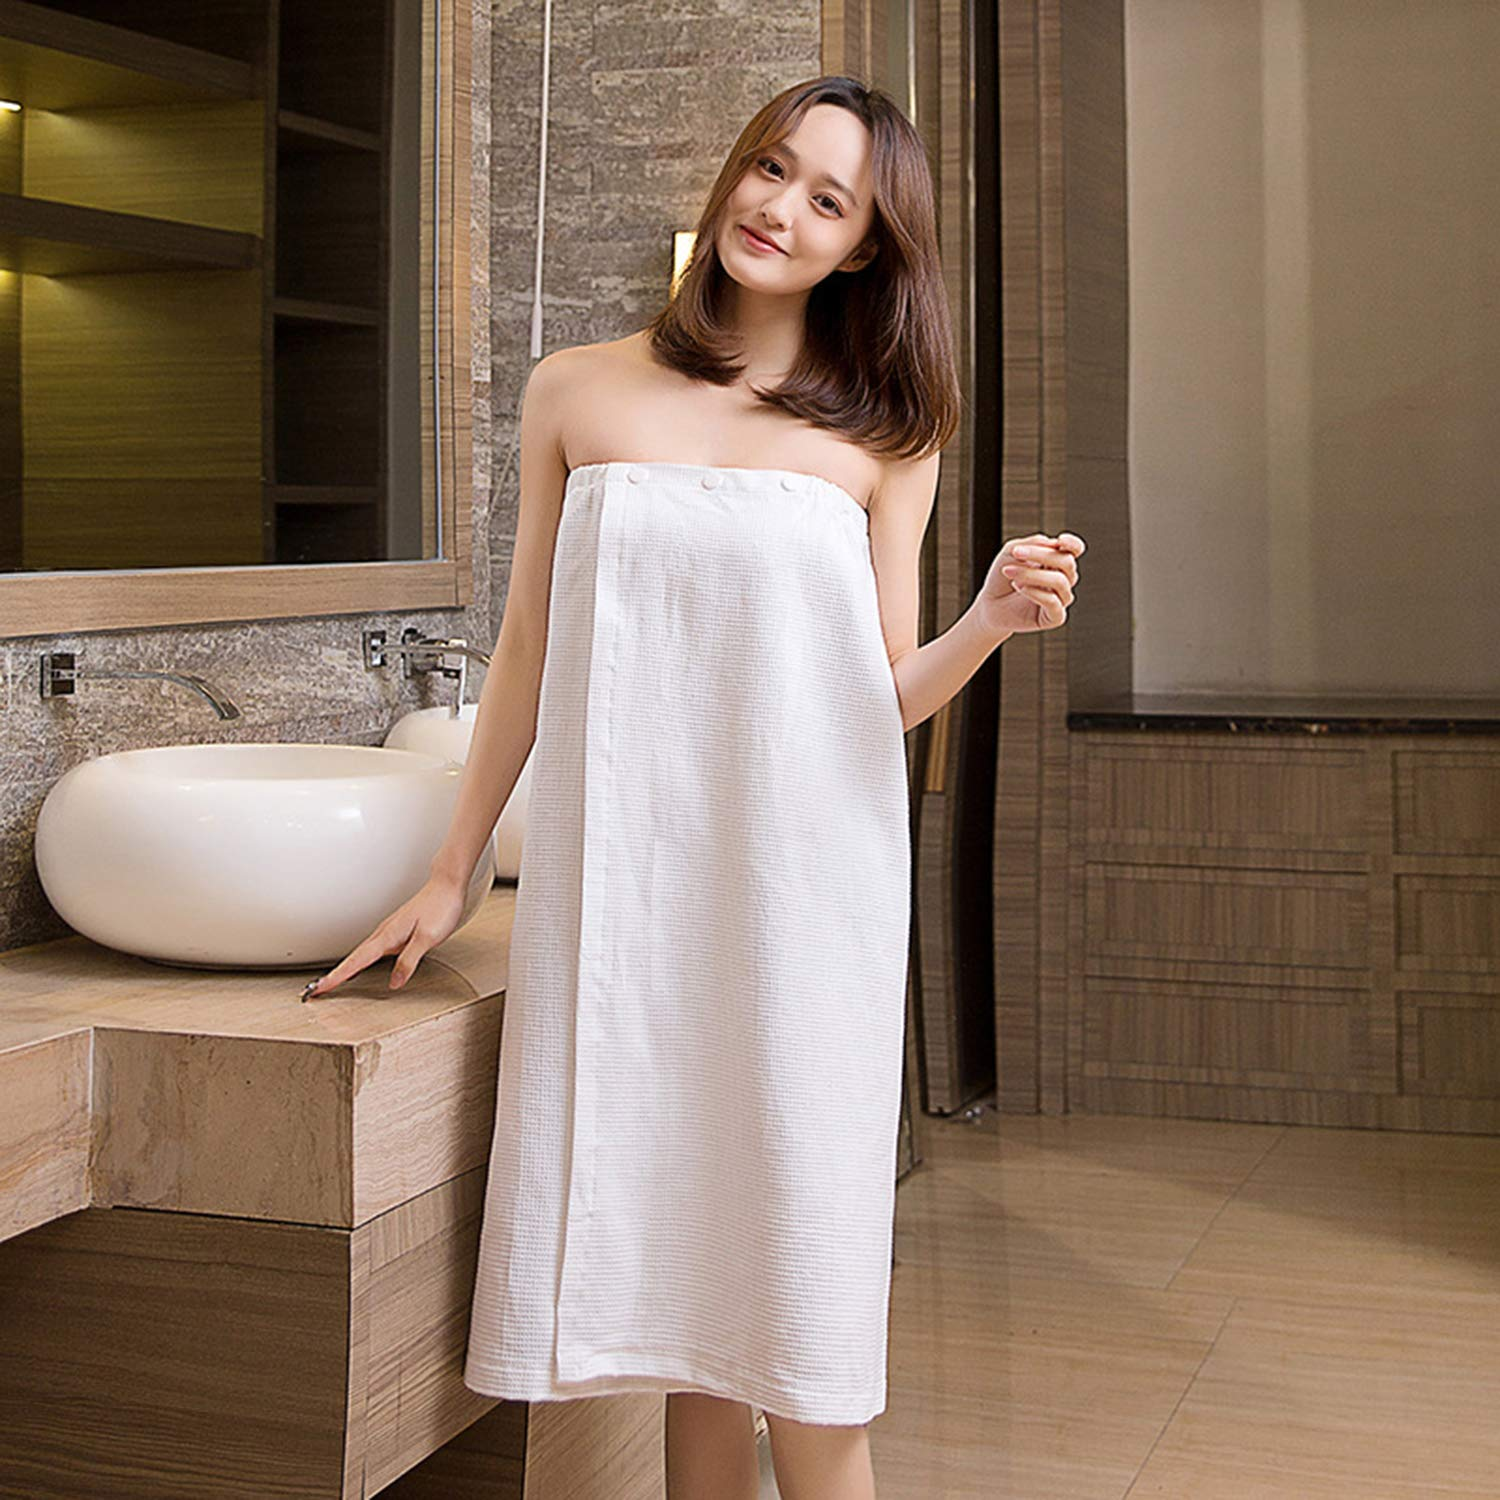 Home Bath Skirt, Ladies Simple Cotton Tube Top Bathrobe, Suitable for Girls in The Bathroom Bedroom Living Room Beach, AB Two White B